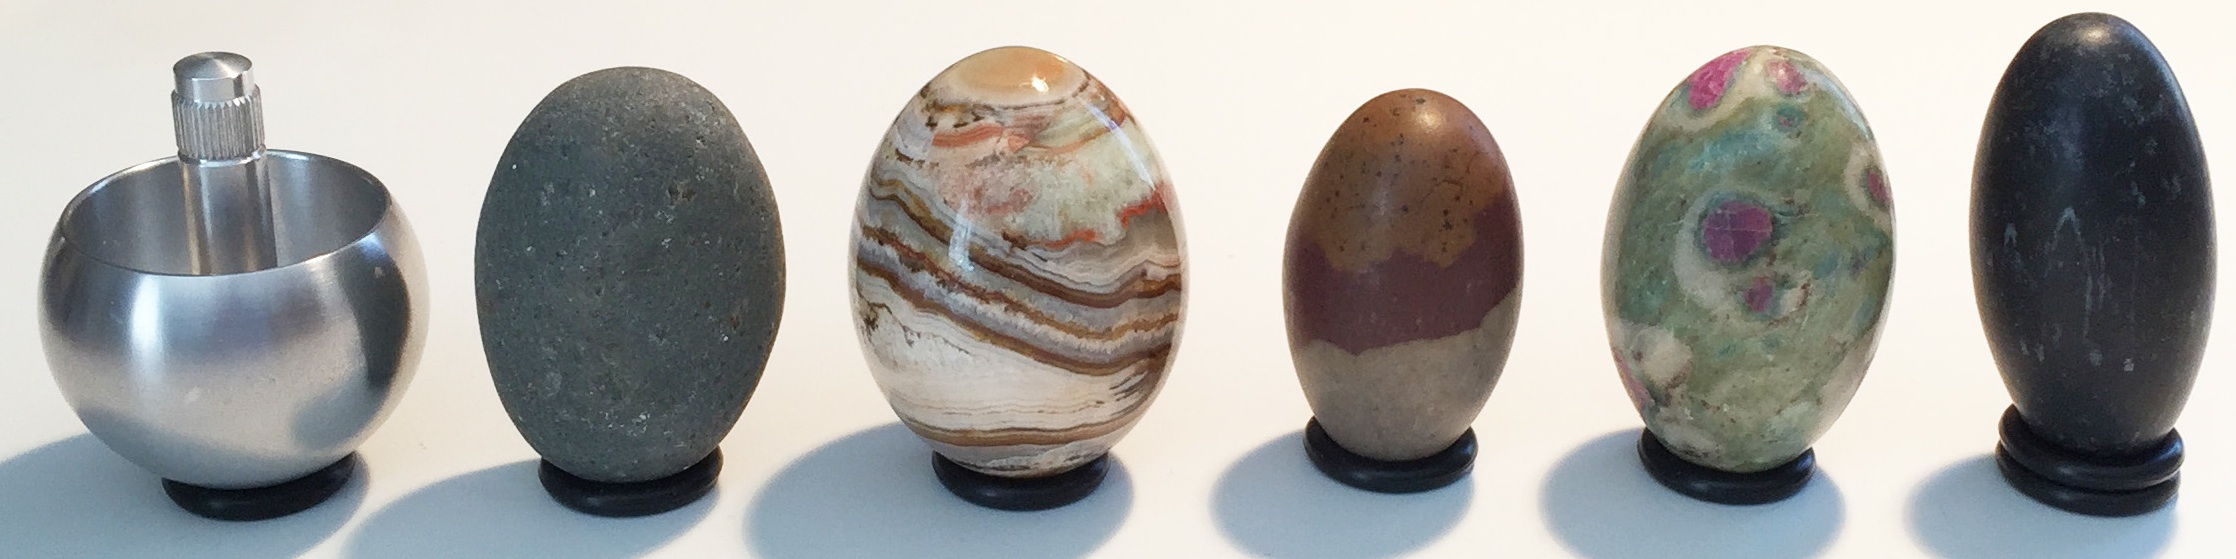 A variety of spinning objects: tippe-top; natural pebble; polished jasper stone egg; classic Lingam stone; ruby/fuschite Lingam stone; black Lingam stone. Each is about 5 cm tall.